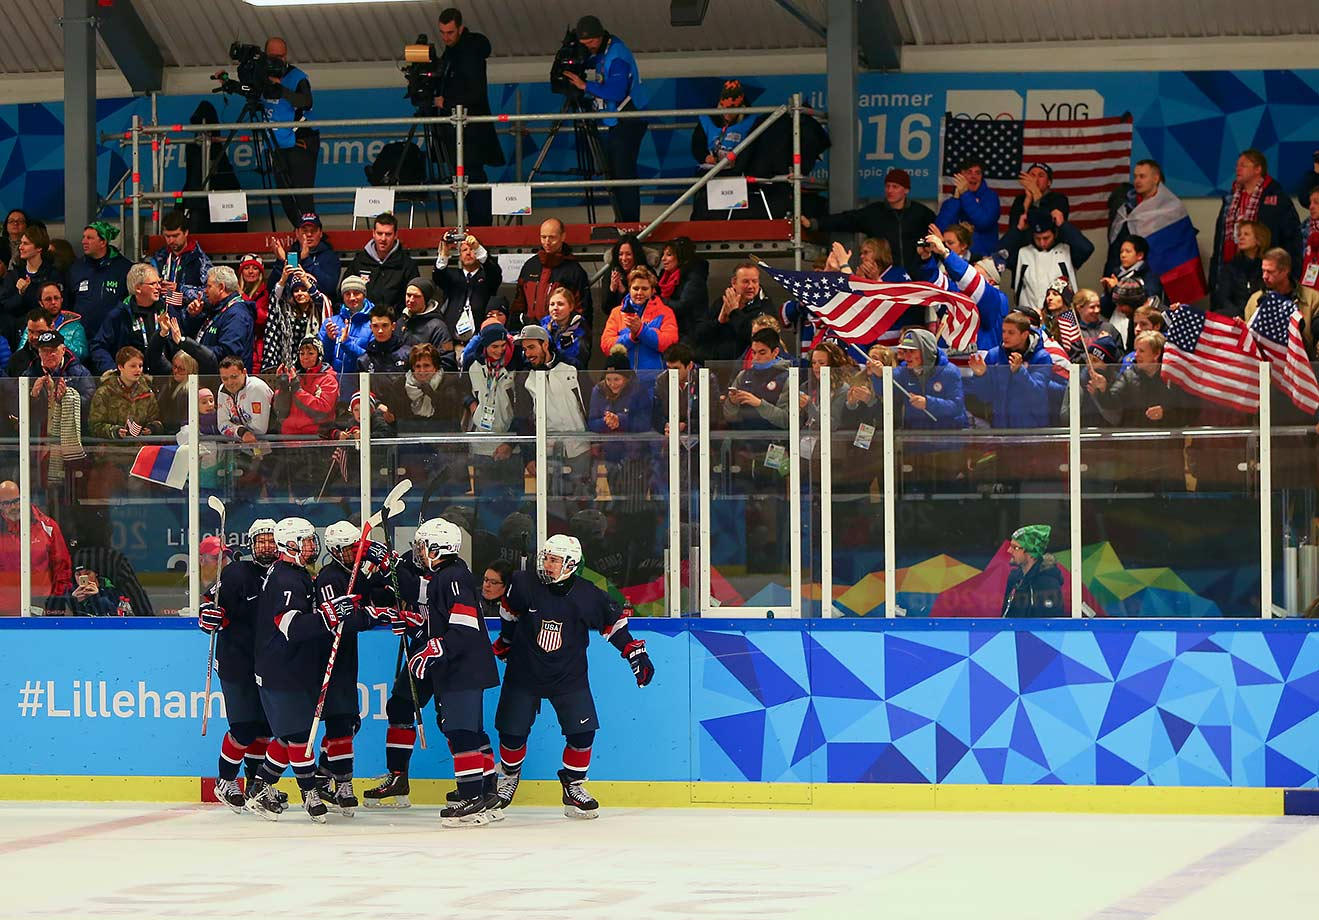 Team USA celebrates their fourth goal in the Men's Ice Hockey Preliminary Round Game against Russia at the Youth Hall on Feb. 18, 2016 during the Winter Youth Olympic Games in Lillehammer, Norway.